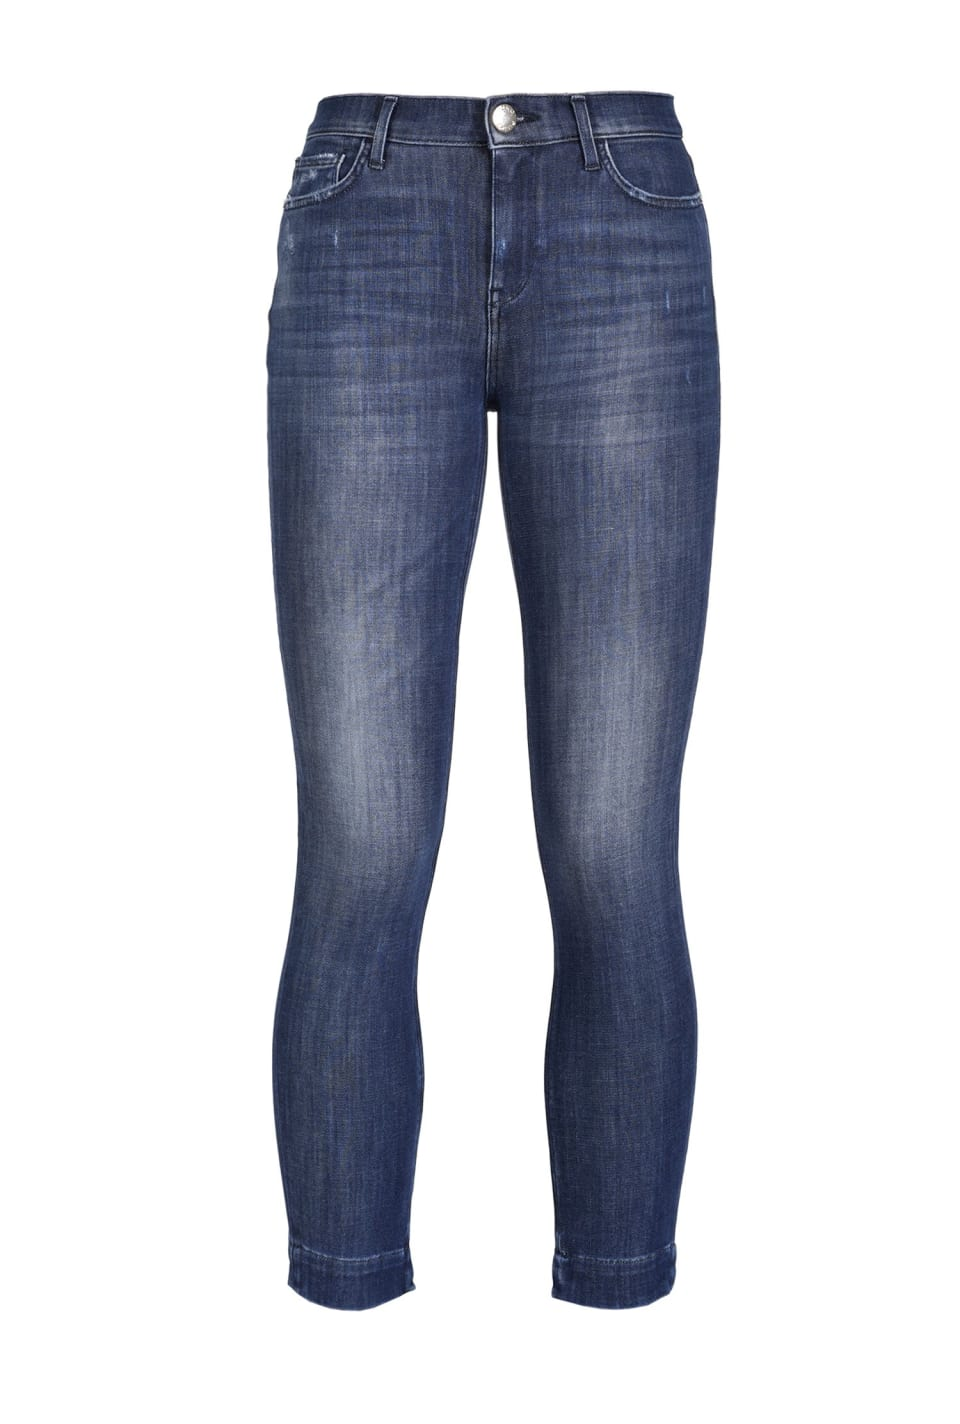 Jeans skinny in denim bistretch